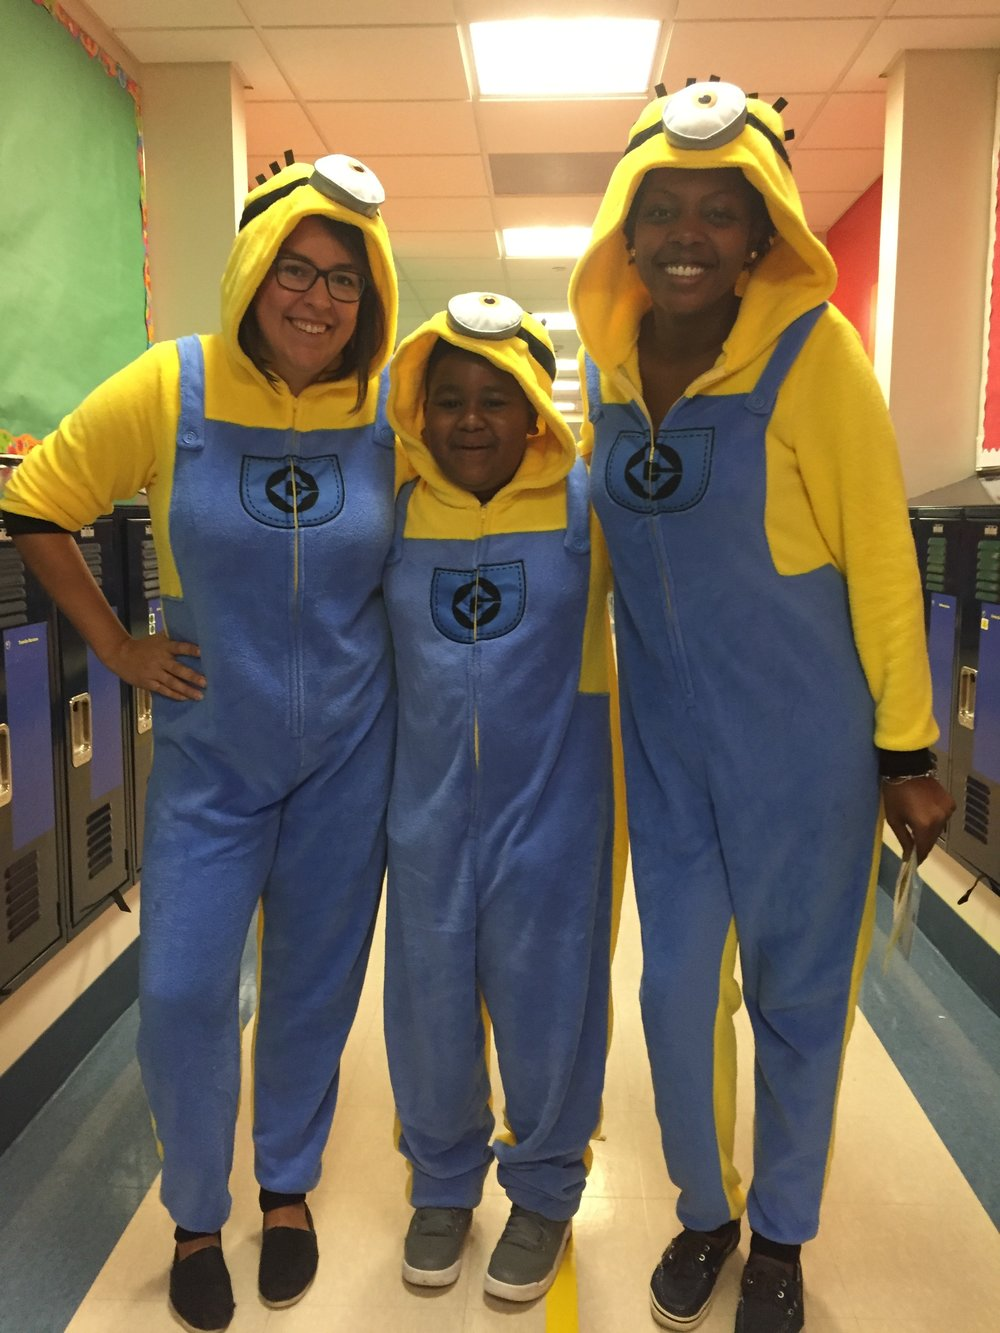 Amistad Academy Middle does Minions.